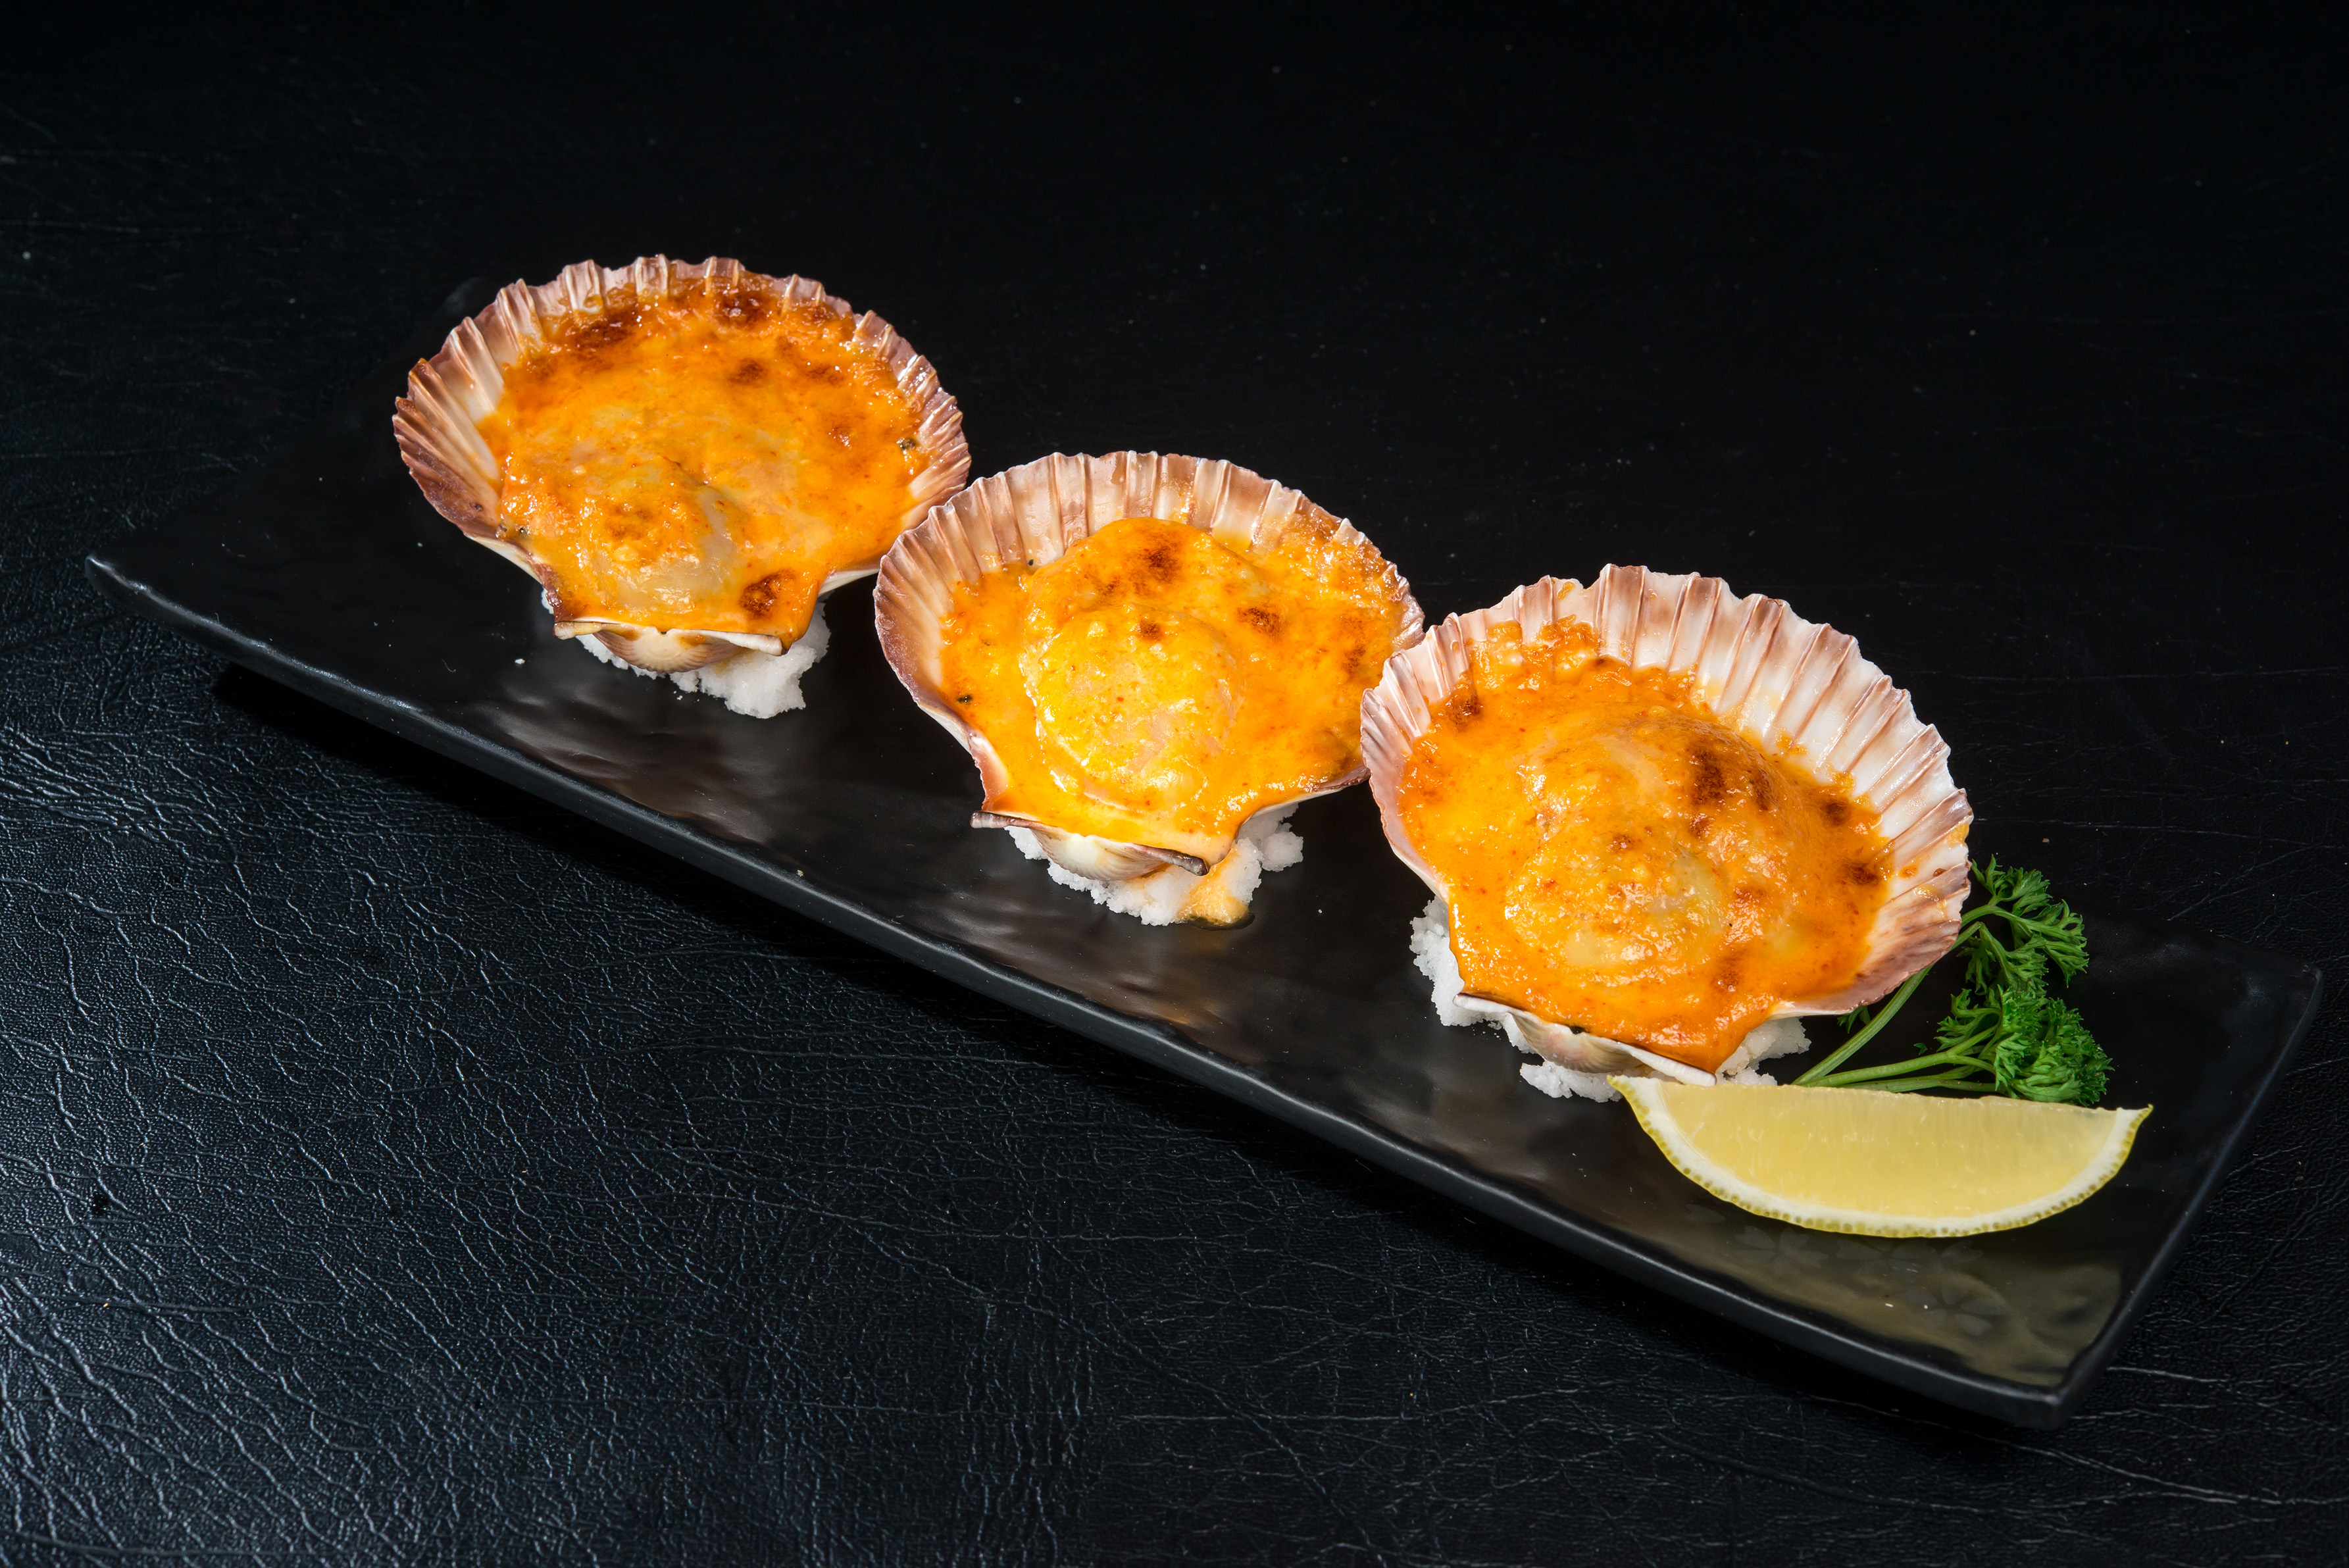 Spicy Grilled Cheese Scallop